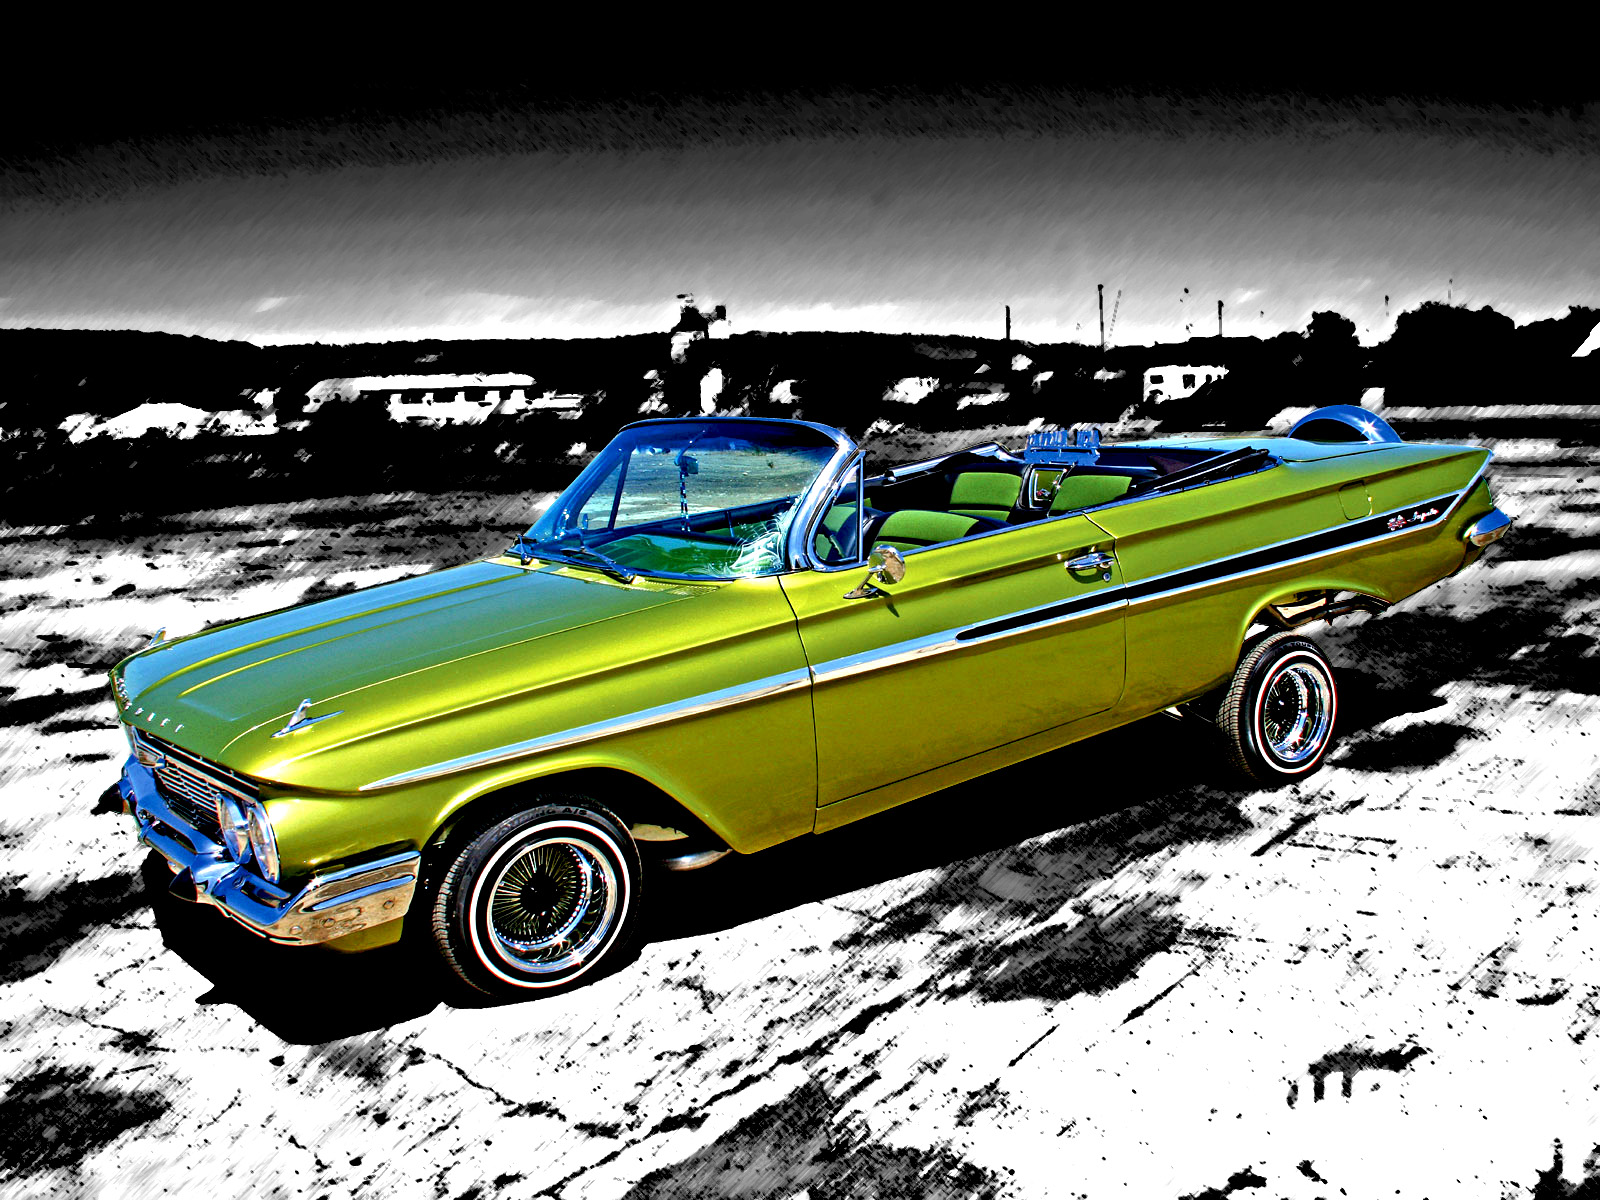 lowrider cars pictures HD Widescreen Wallpaper from the above 1600x1200